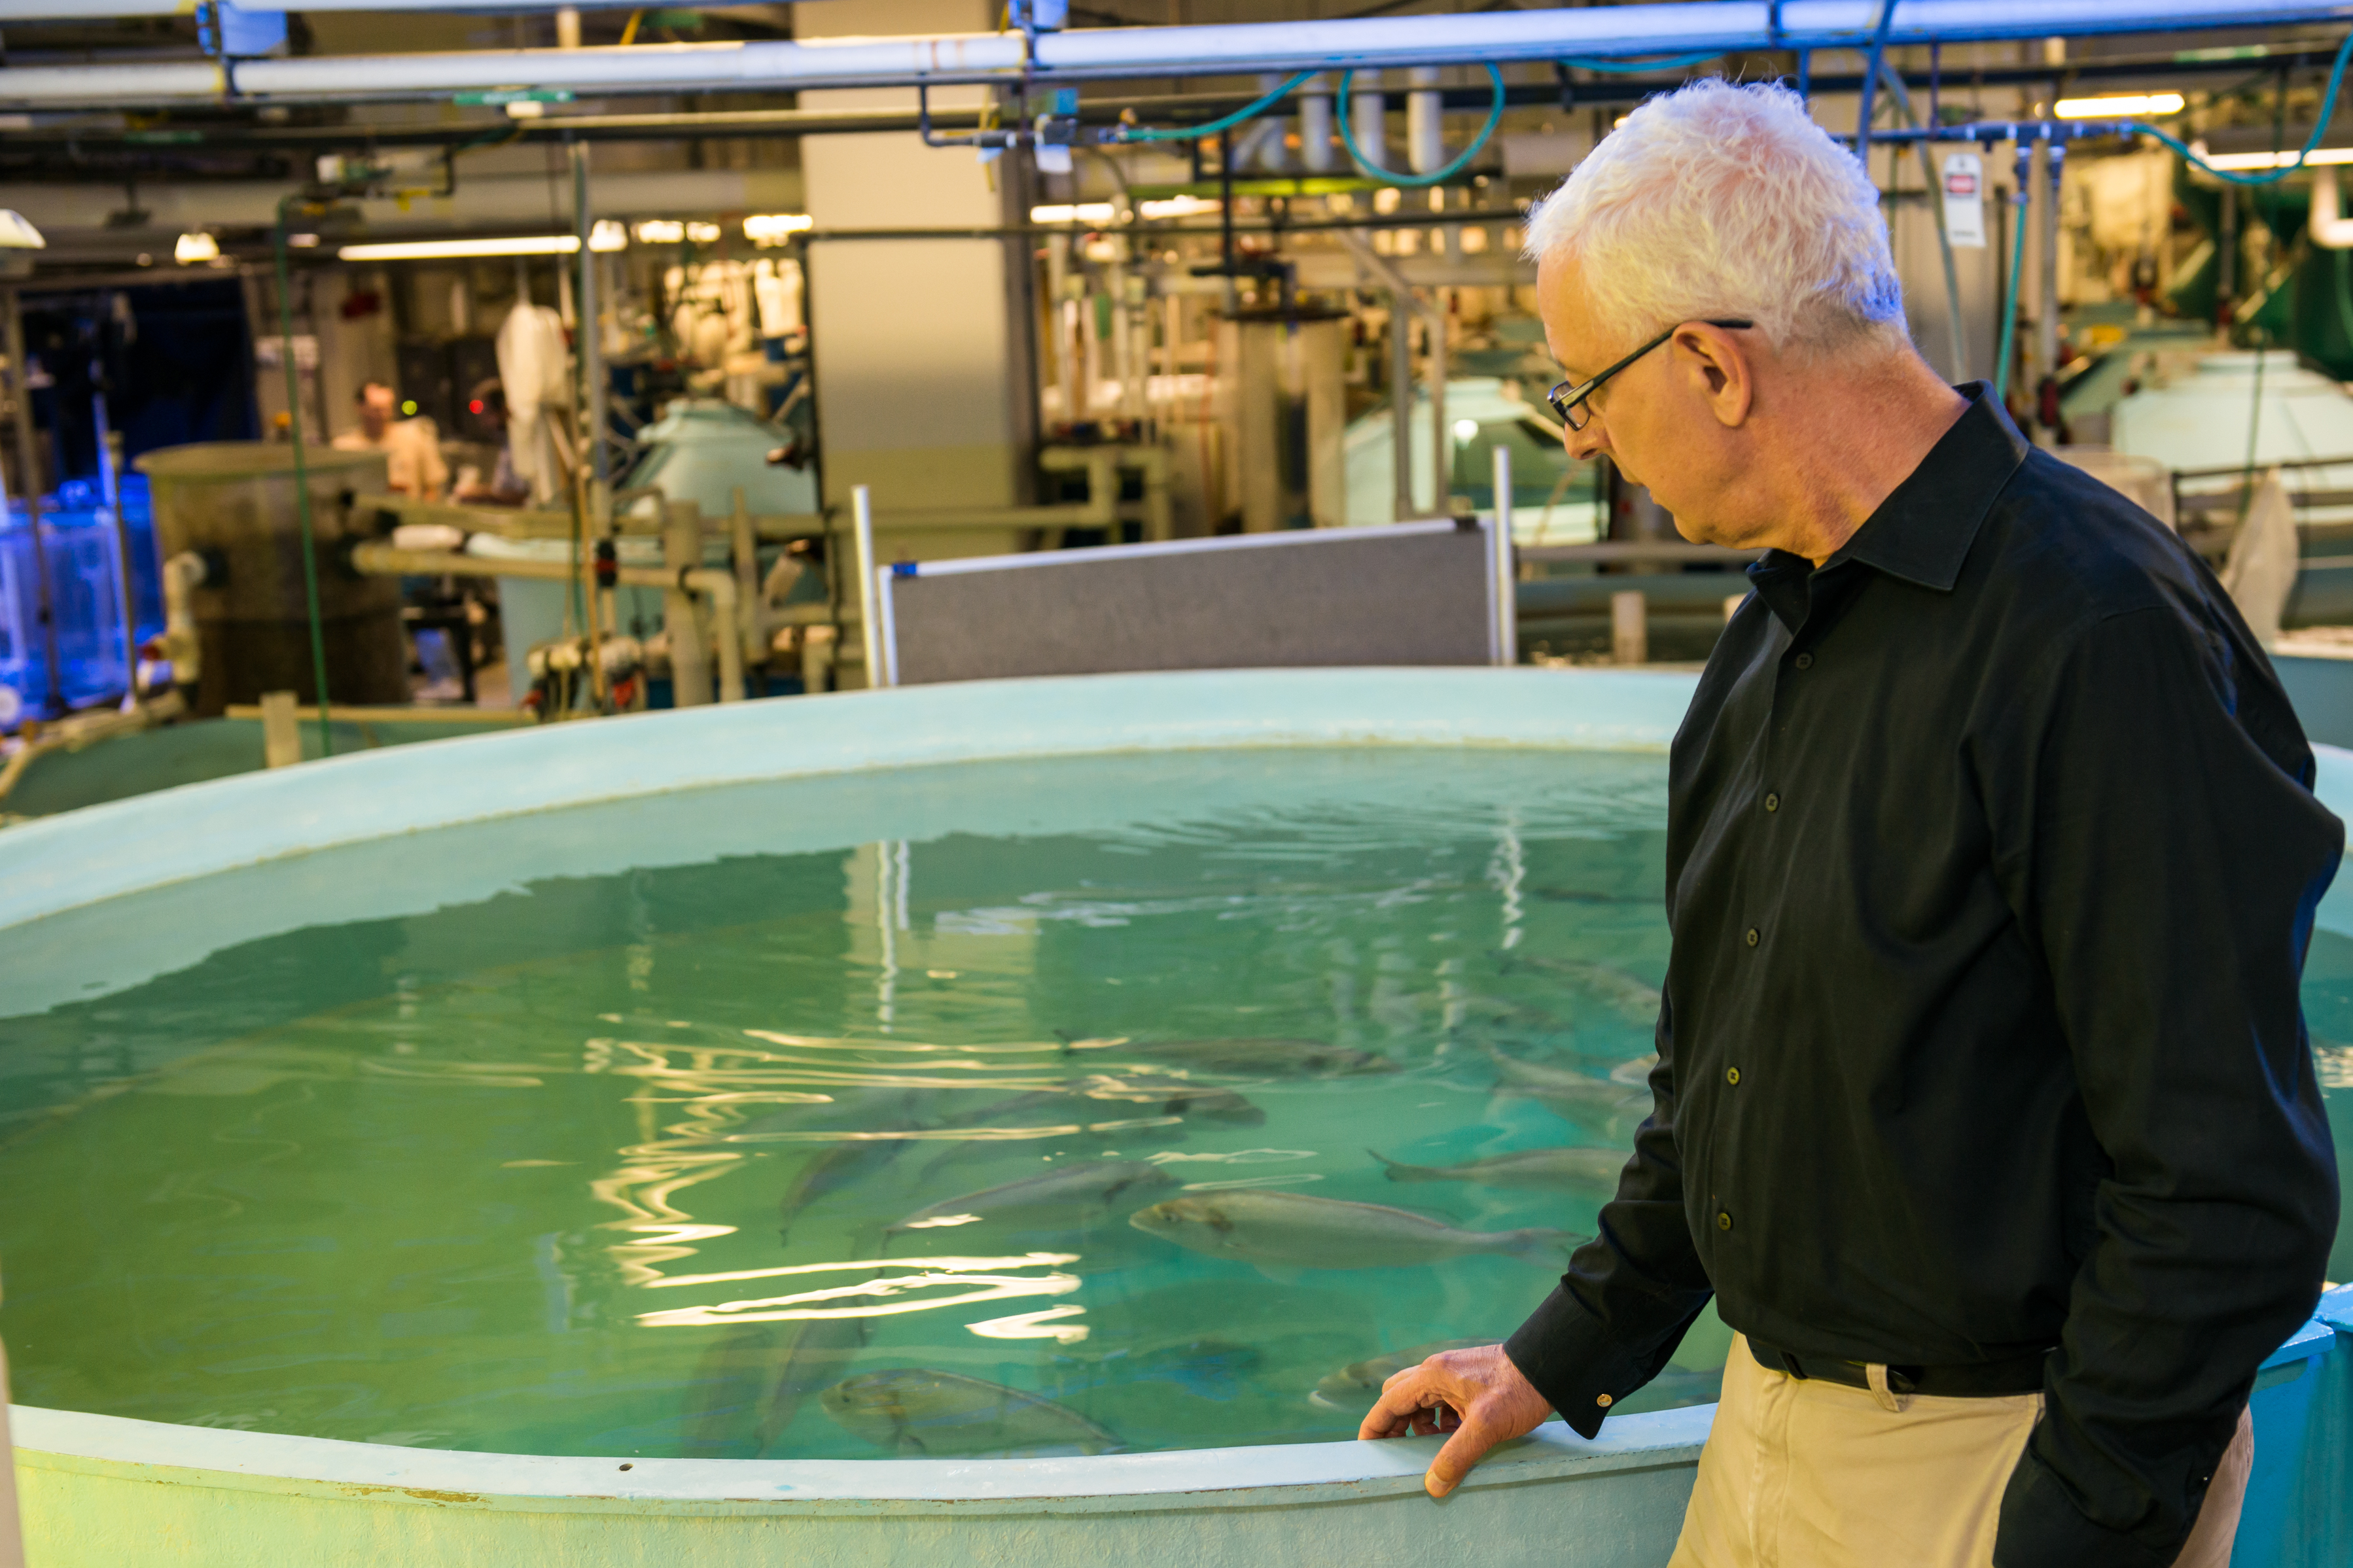 Dr. Zohar stands with his hand on a large round tank of fish